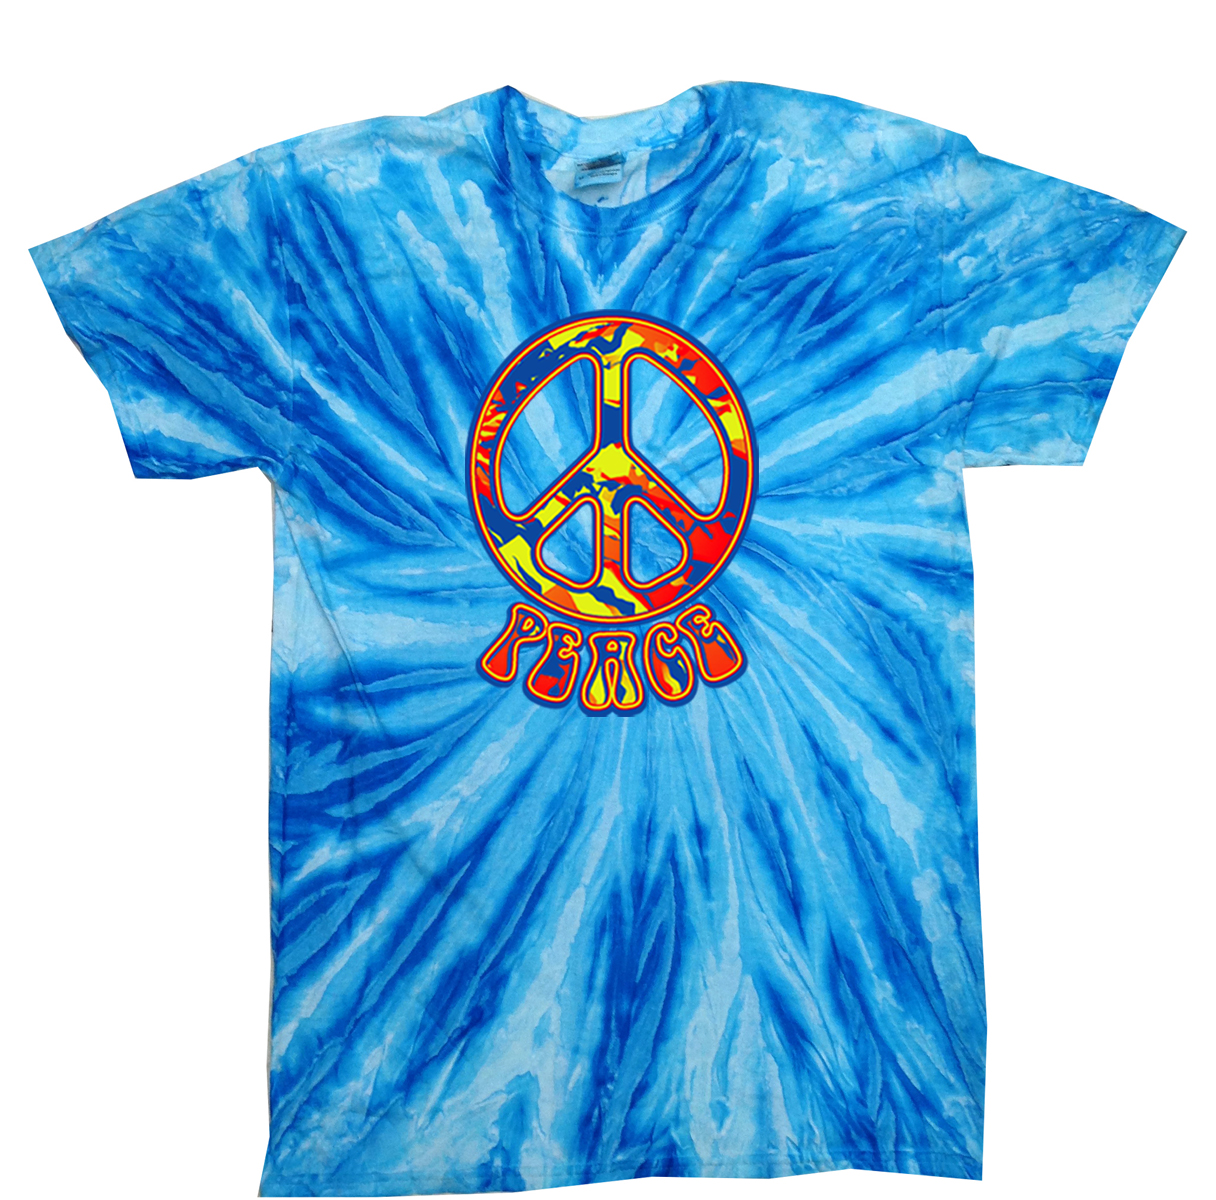 Kids peace tie dye shirt funky peace blueberry twist youth for Tie dye printed shirts